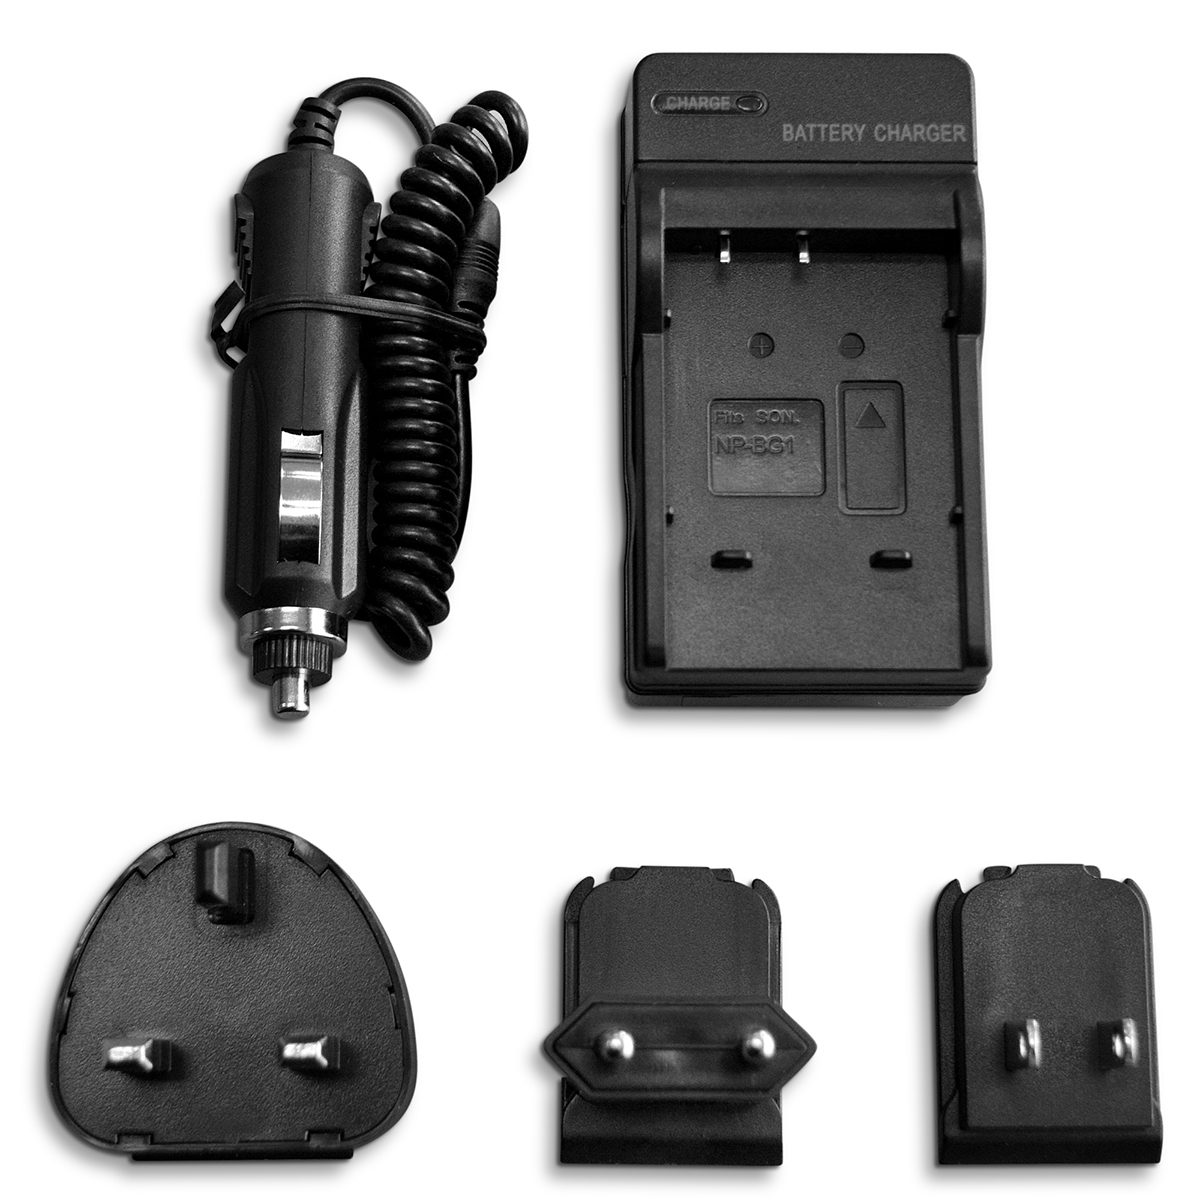 chargeur batterie pour sony camera cybershot dsc w730. Black Bedroom Furniture Sets. Home Design Ideas